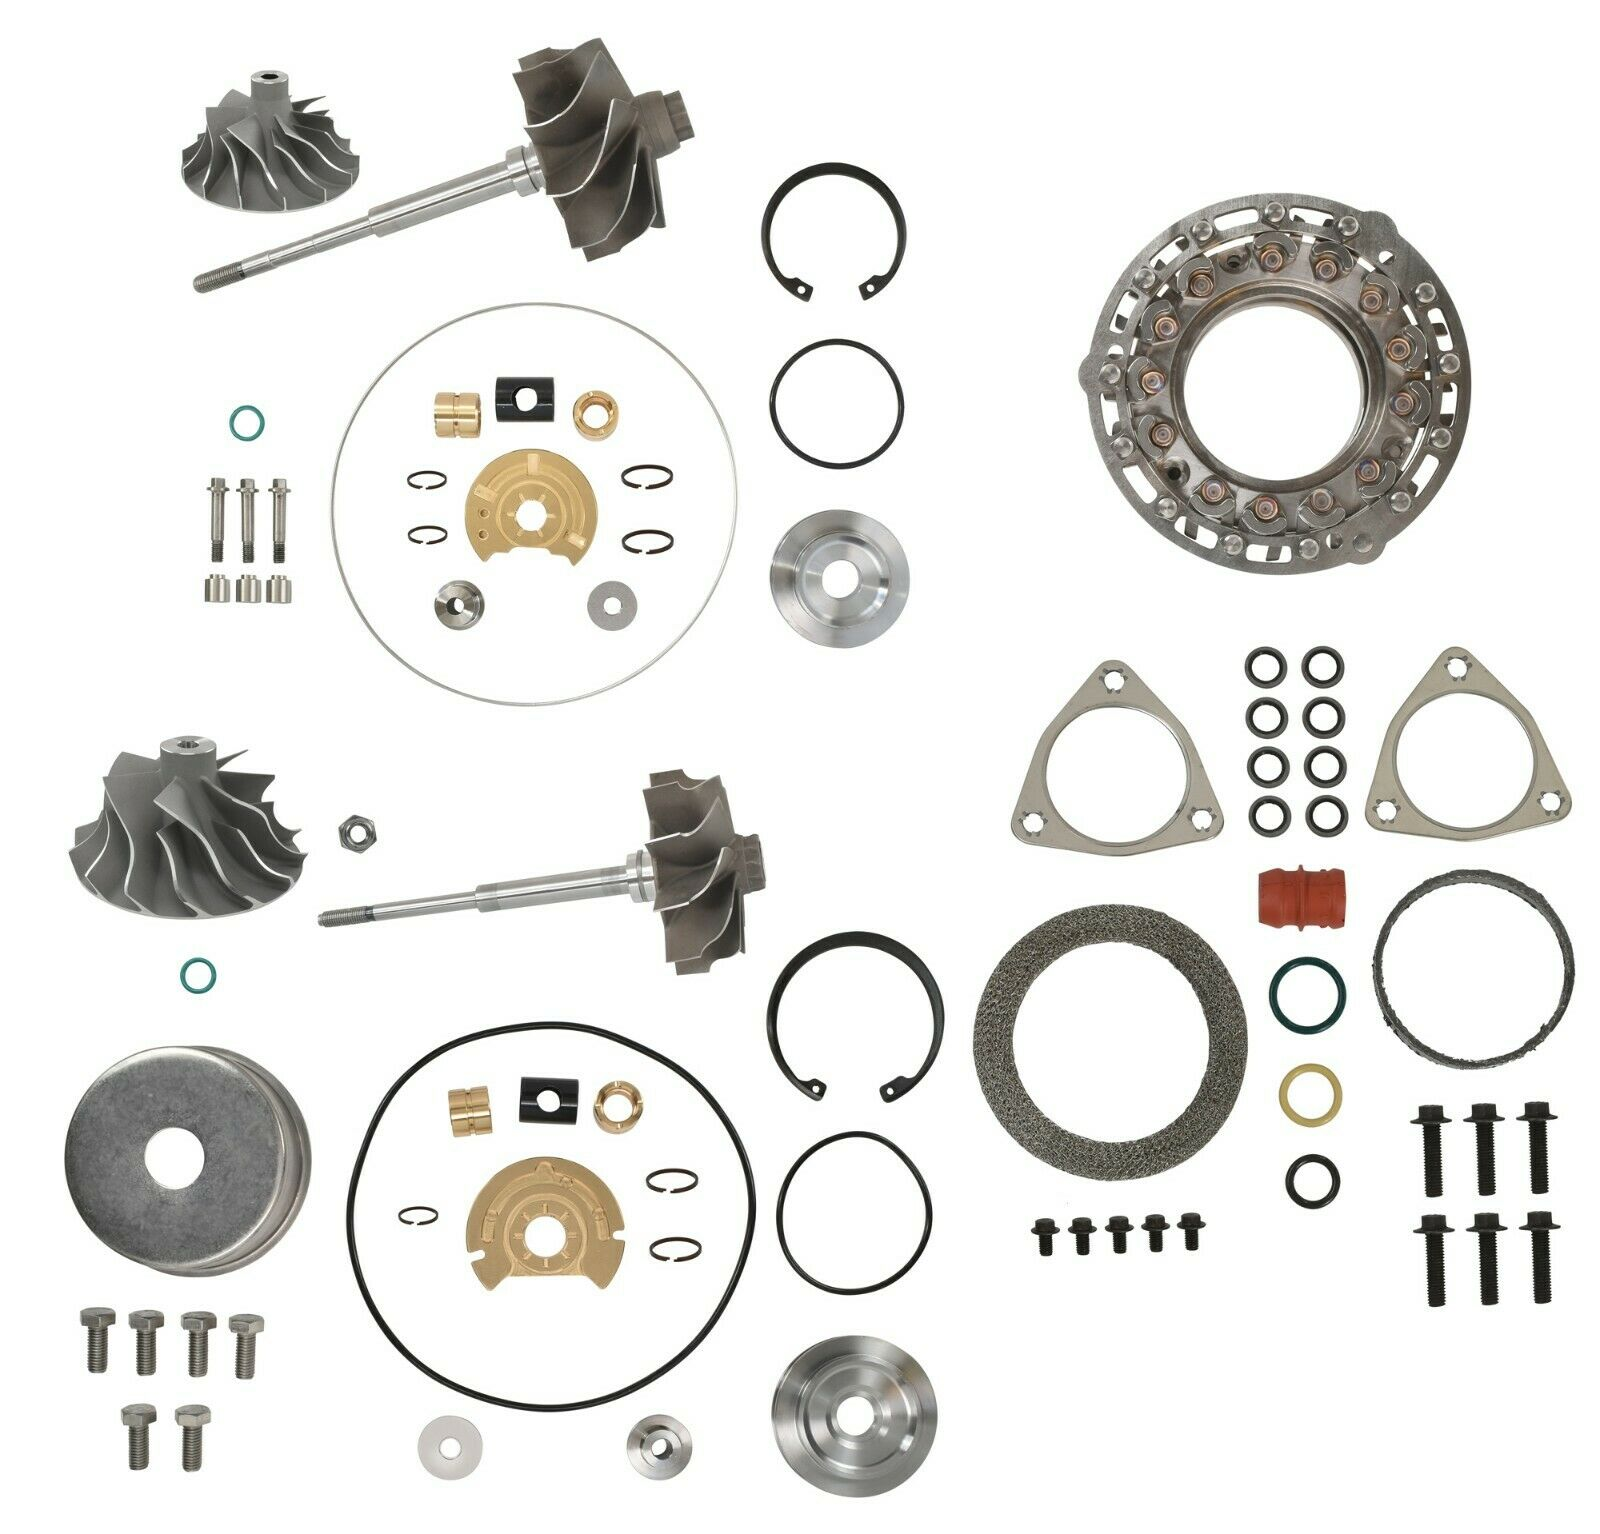 V2S Combo Master Turbo Rebuild Kit Cast For 08-10 6.4L Ford Powerstroke Diesel